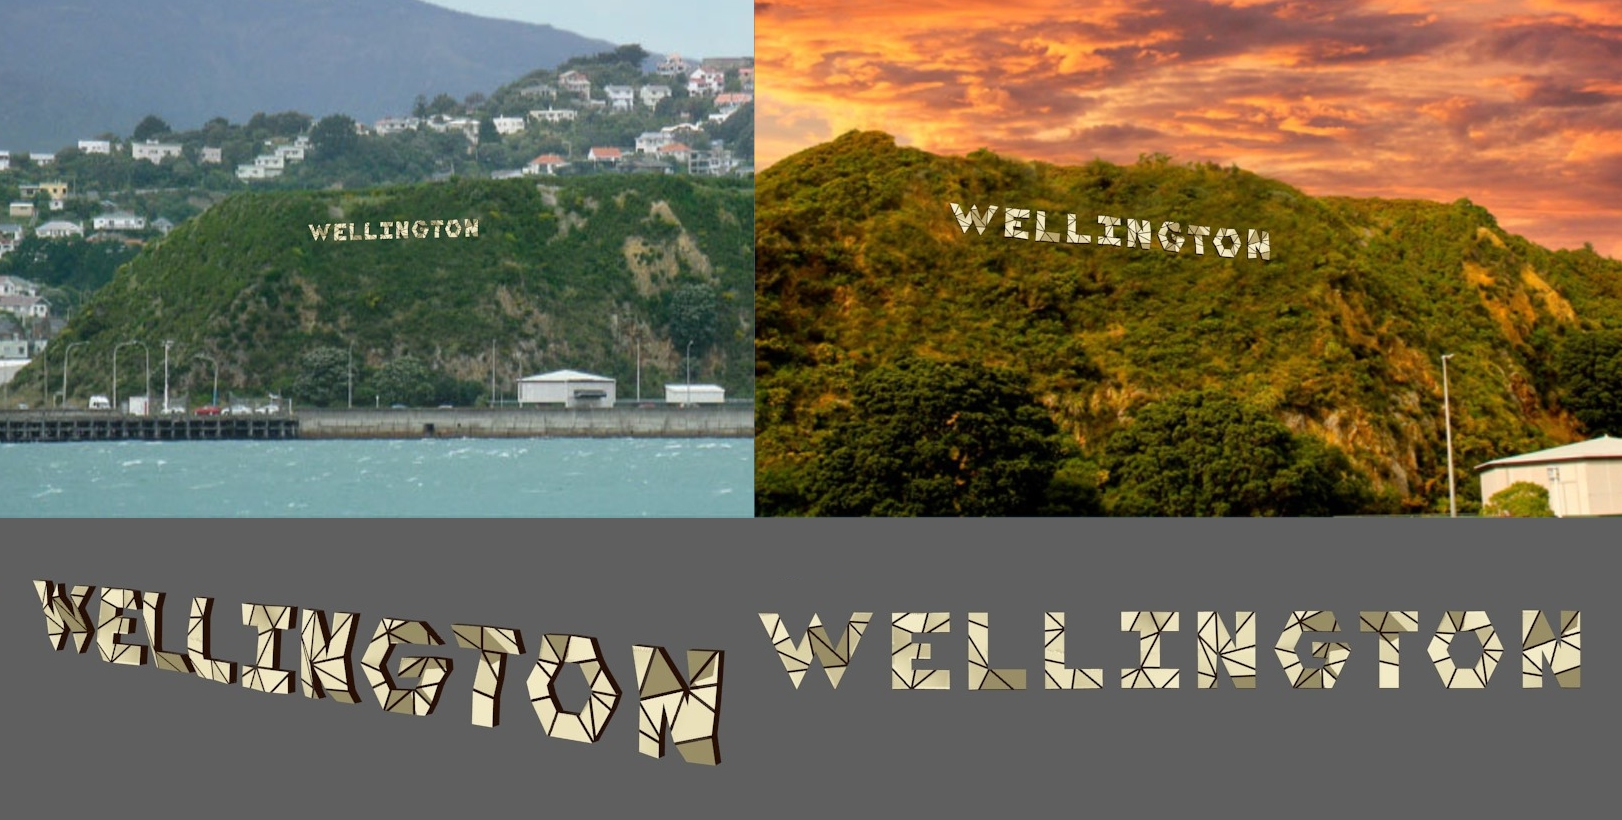 Proposed Wellington sign montage - version 1